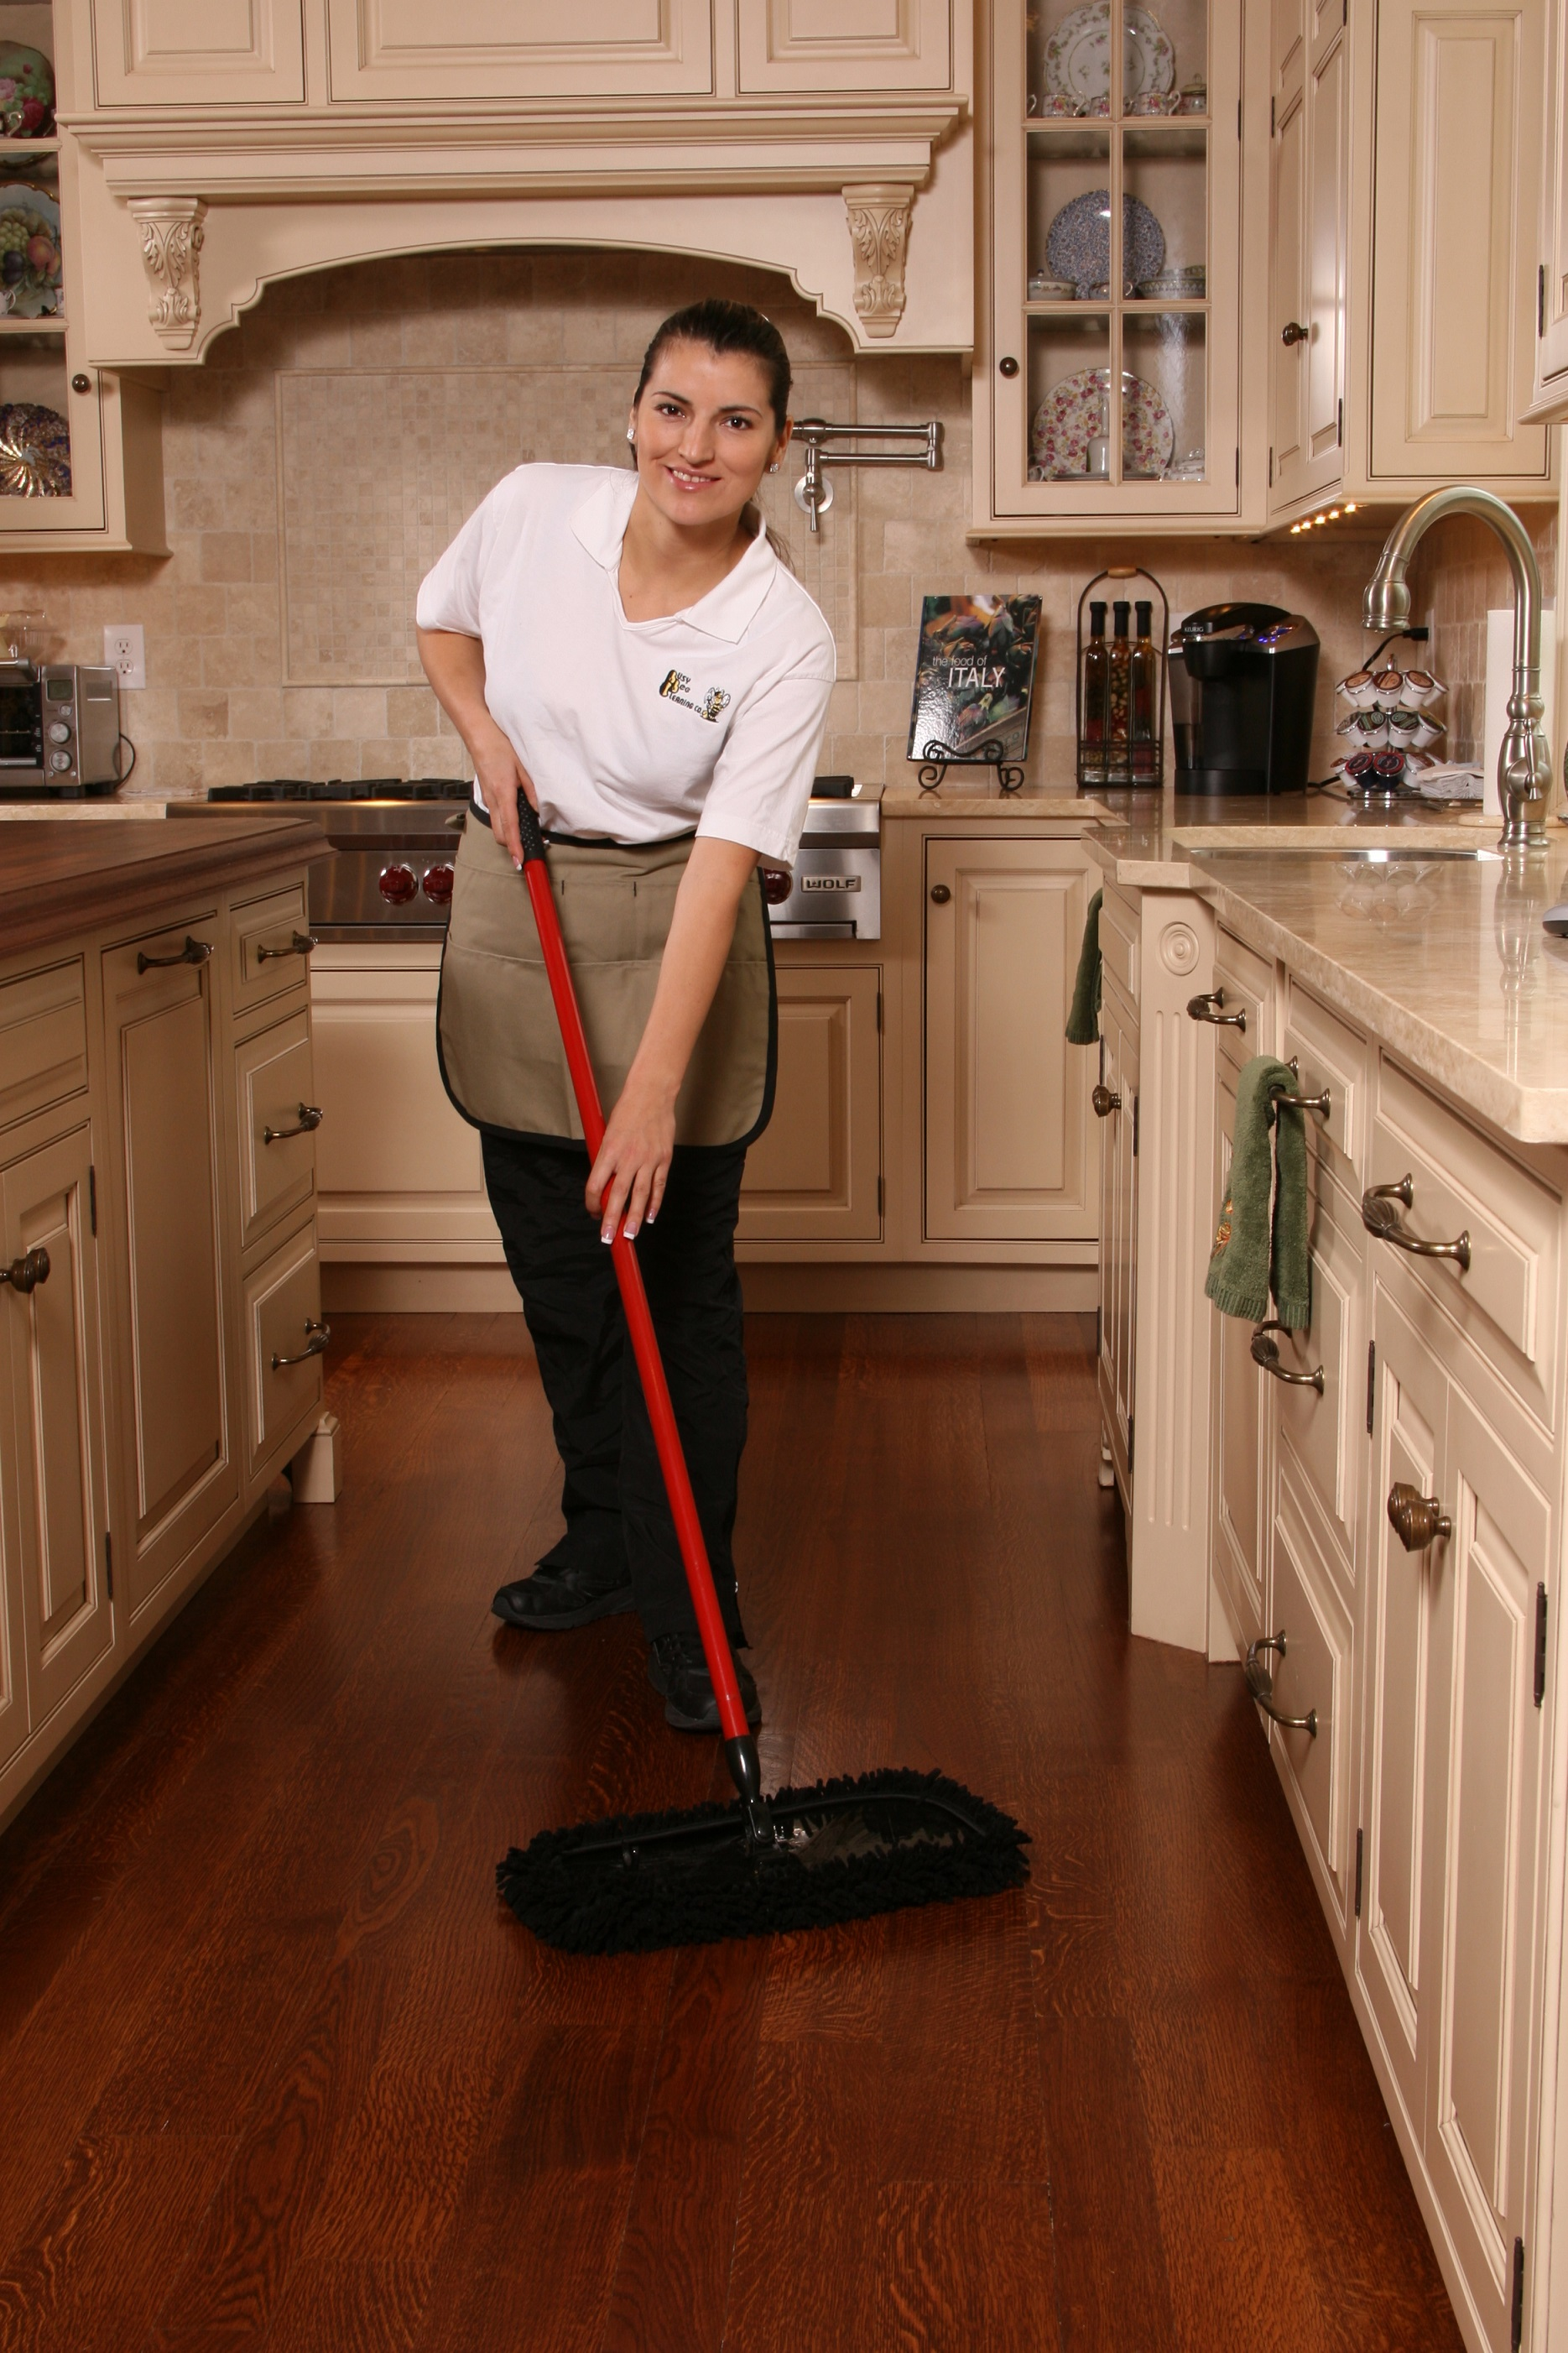 residential cleaning services west chester pa